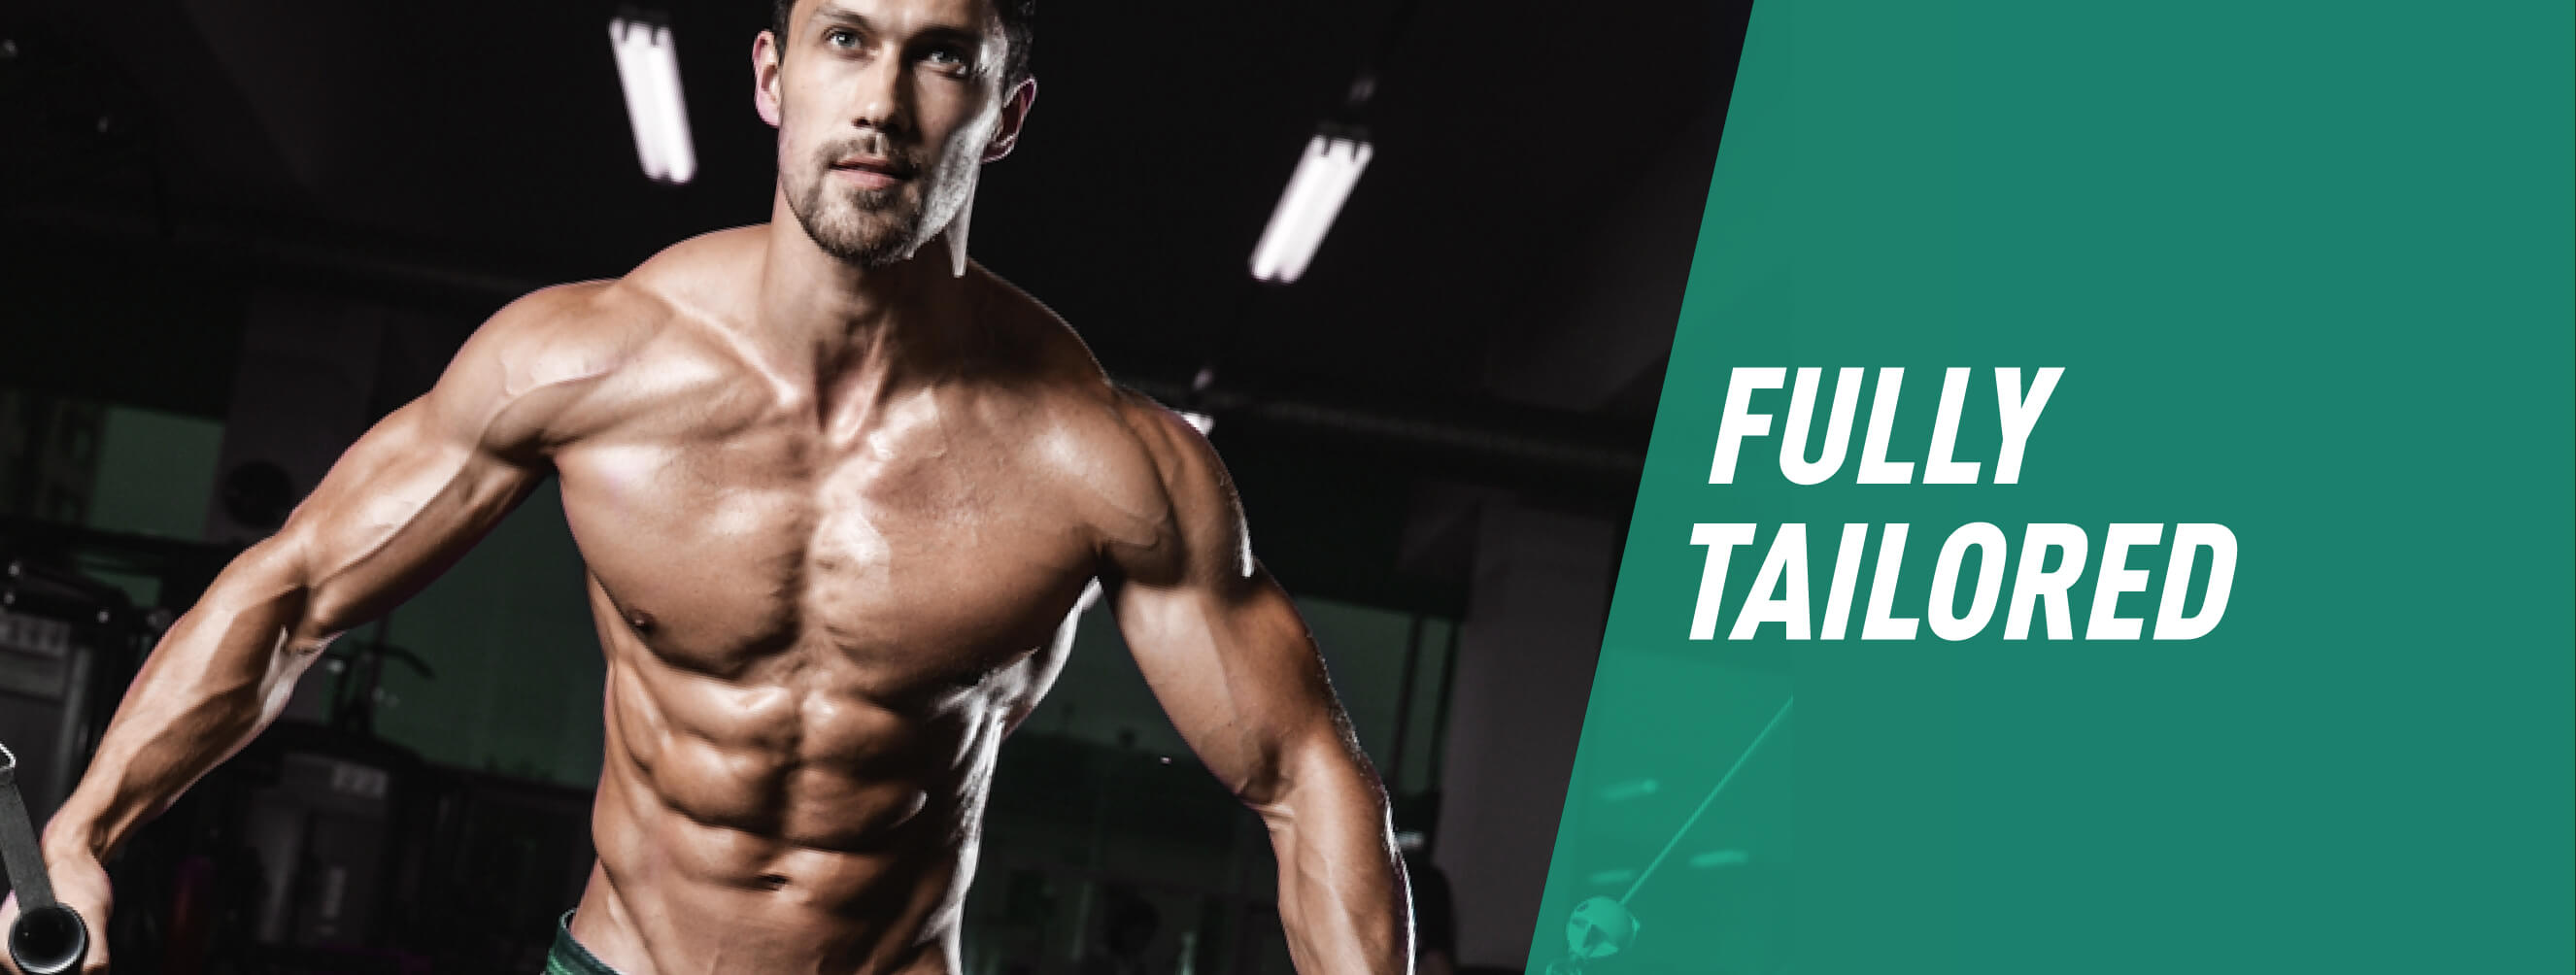 Fully Tailored Online Training Programme - Male Banner